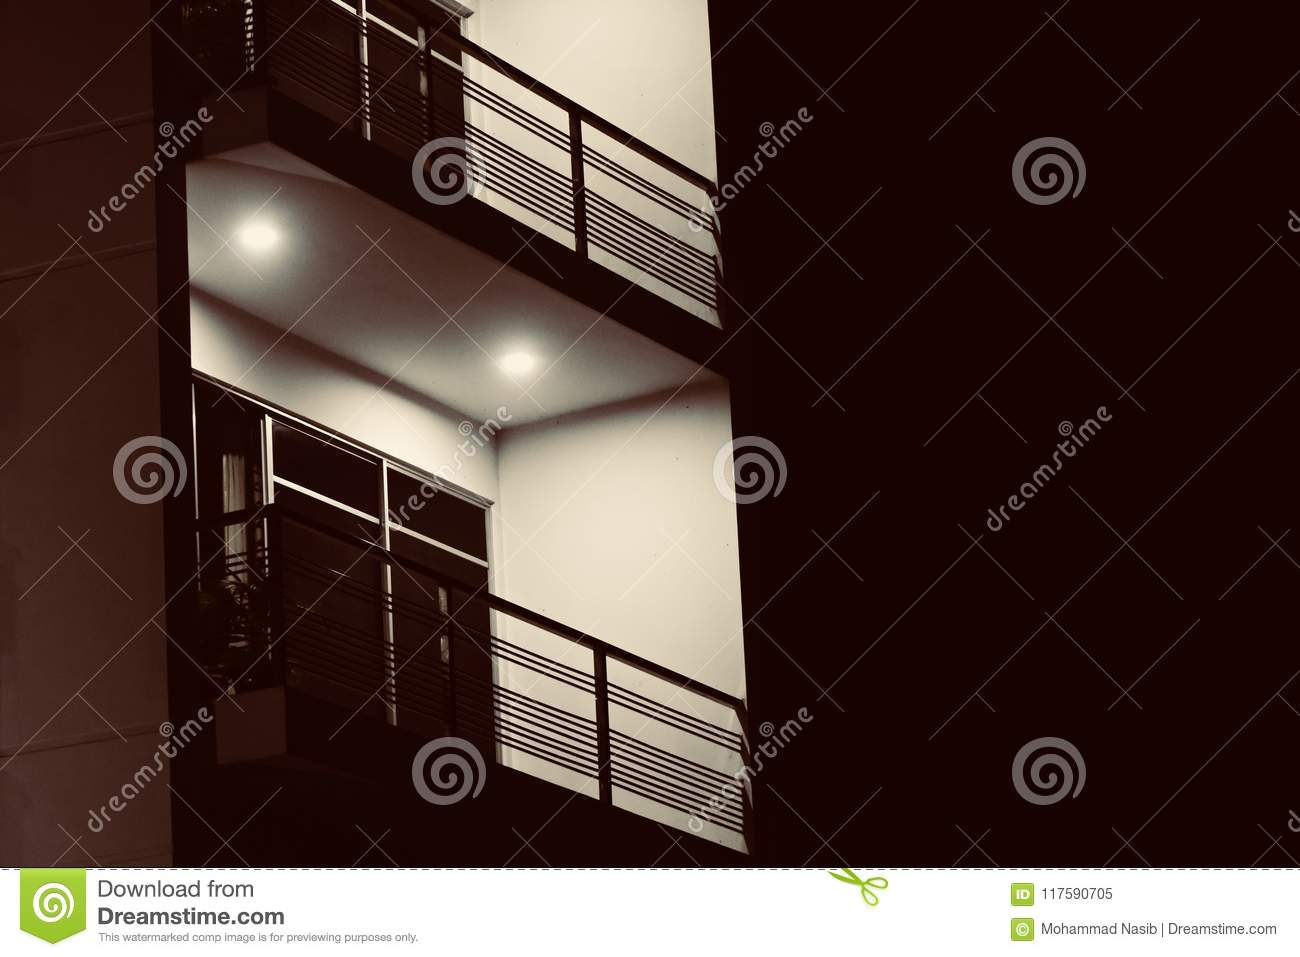 Download A Modern Architecture Building Balcony At Night Unique Photo Stock Image - Image of lighting, asian: 117590705